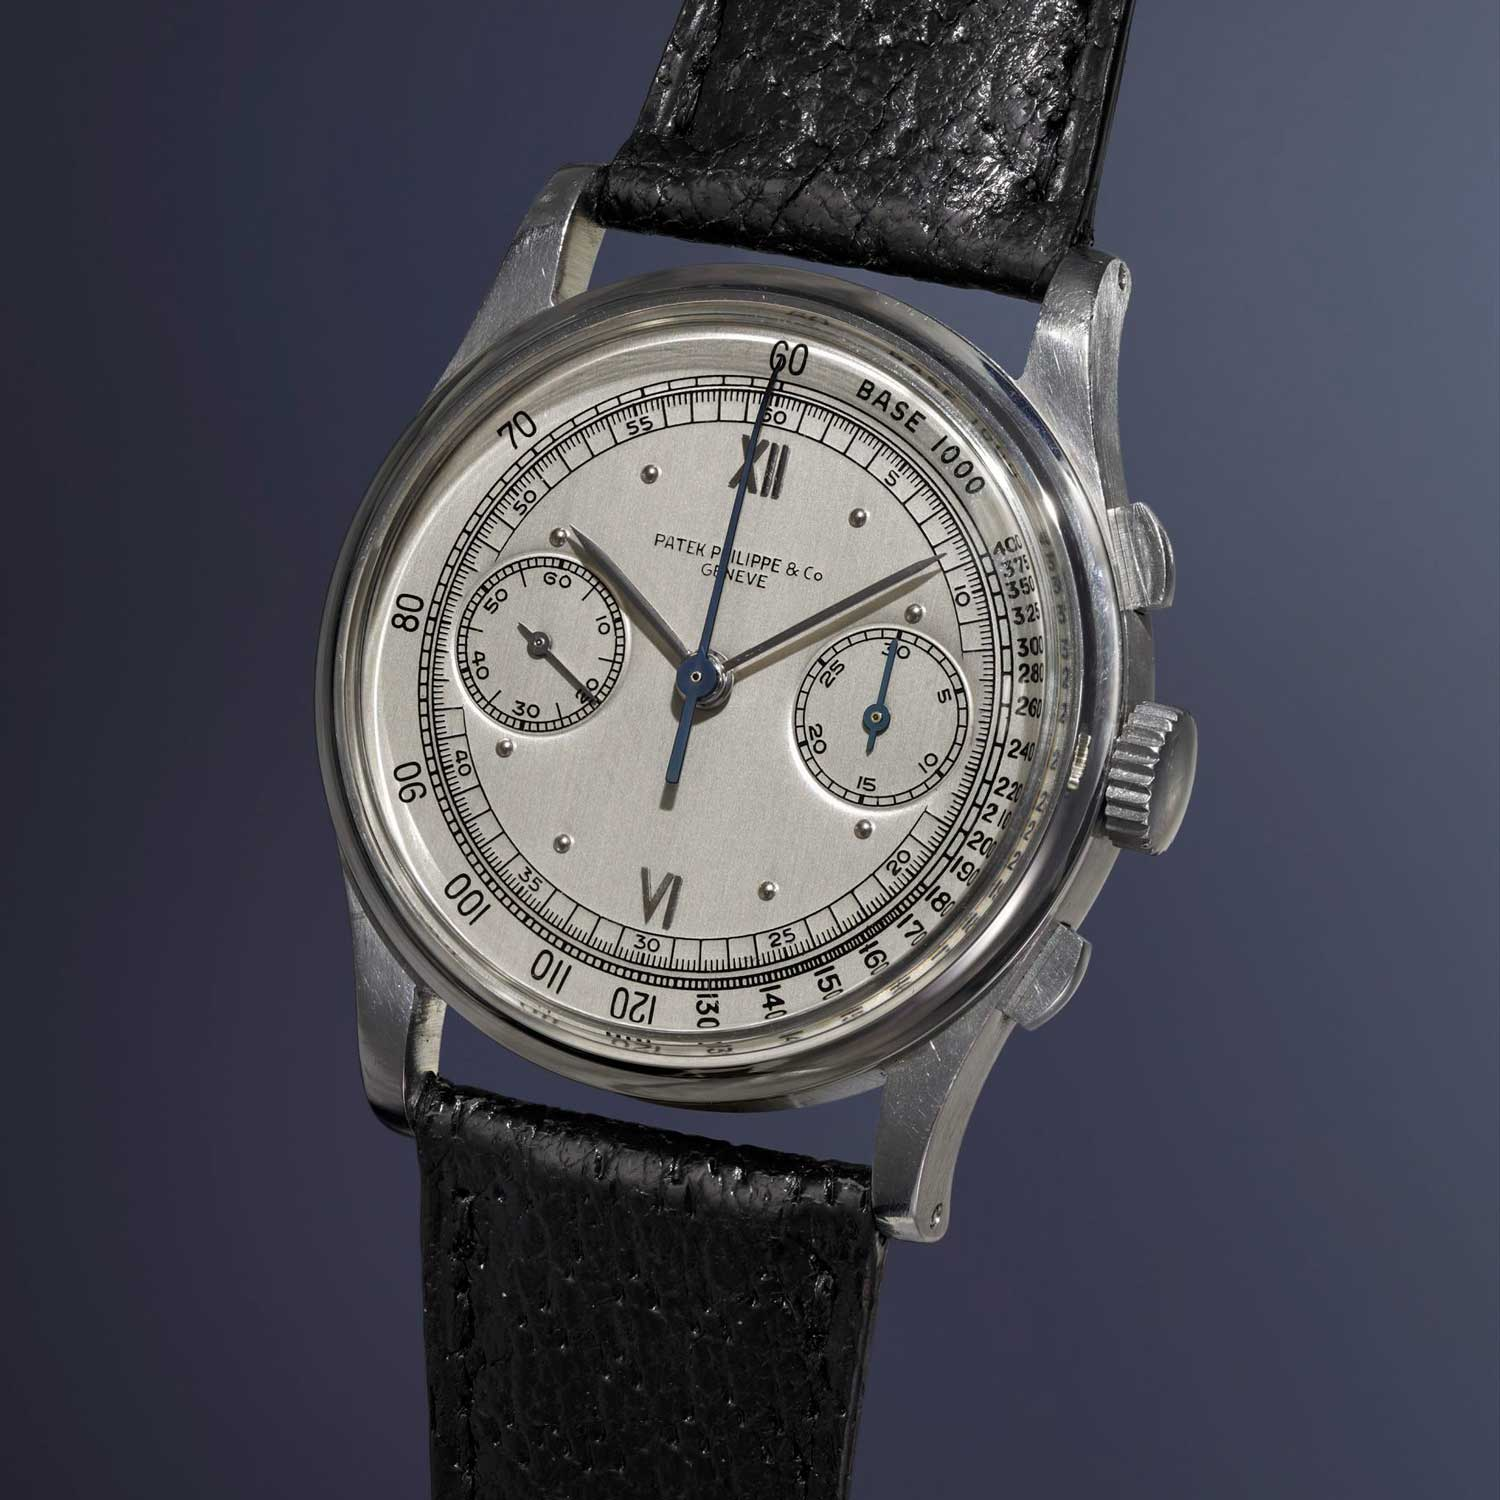 A 1942 Patek Philippe ref. 530 steel chronograph sold at Phillips Watches' Start-Stop-Reset for CHF821,000 (Image: phillipswatches.com)